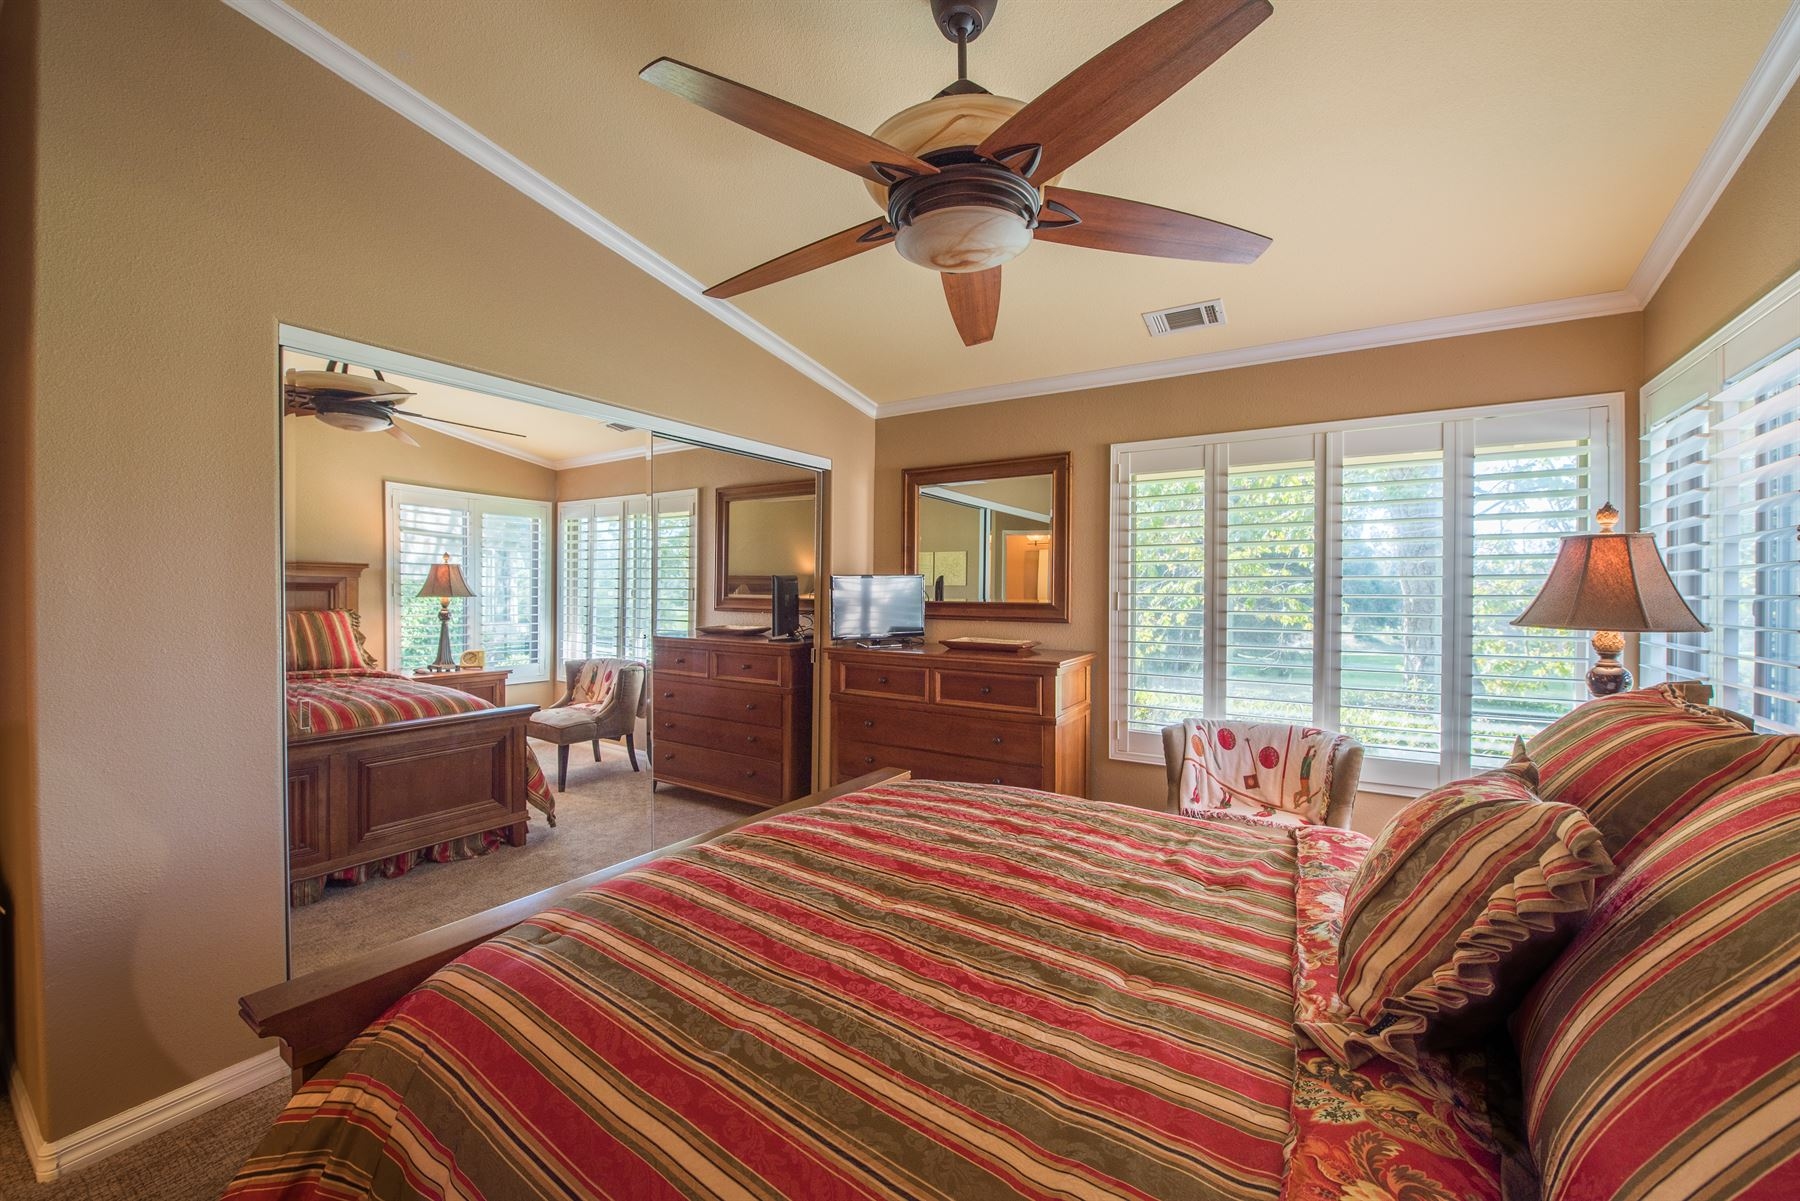 Golfer's Getaway - Interior - Bedroom with large bed and seating area by window